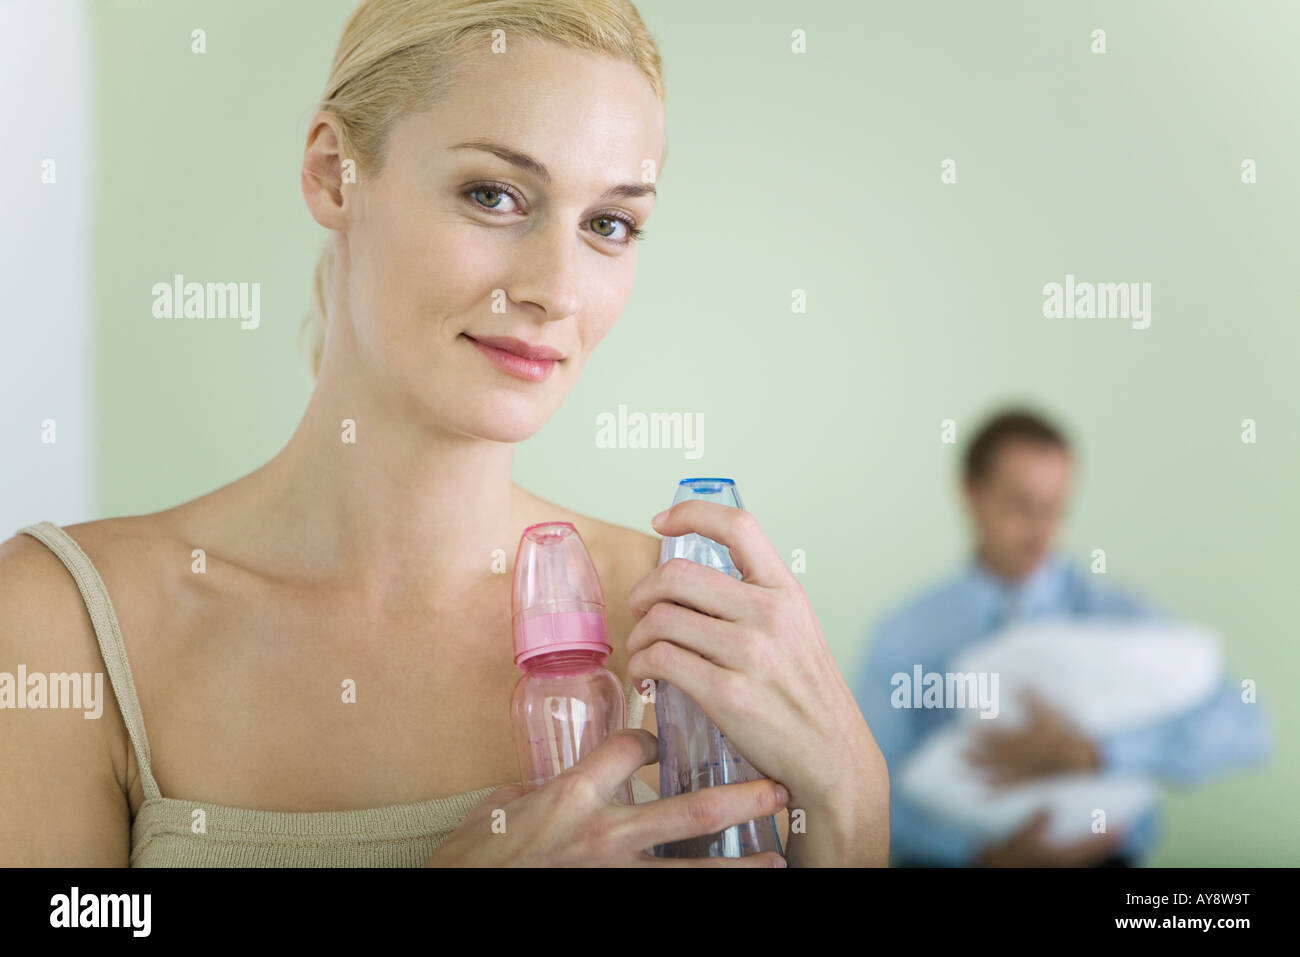 Woman holding baby bottles, smiling at camera, man holding baby in background - Stock Image